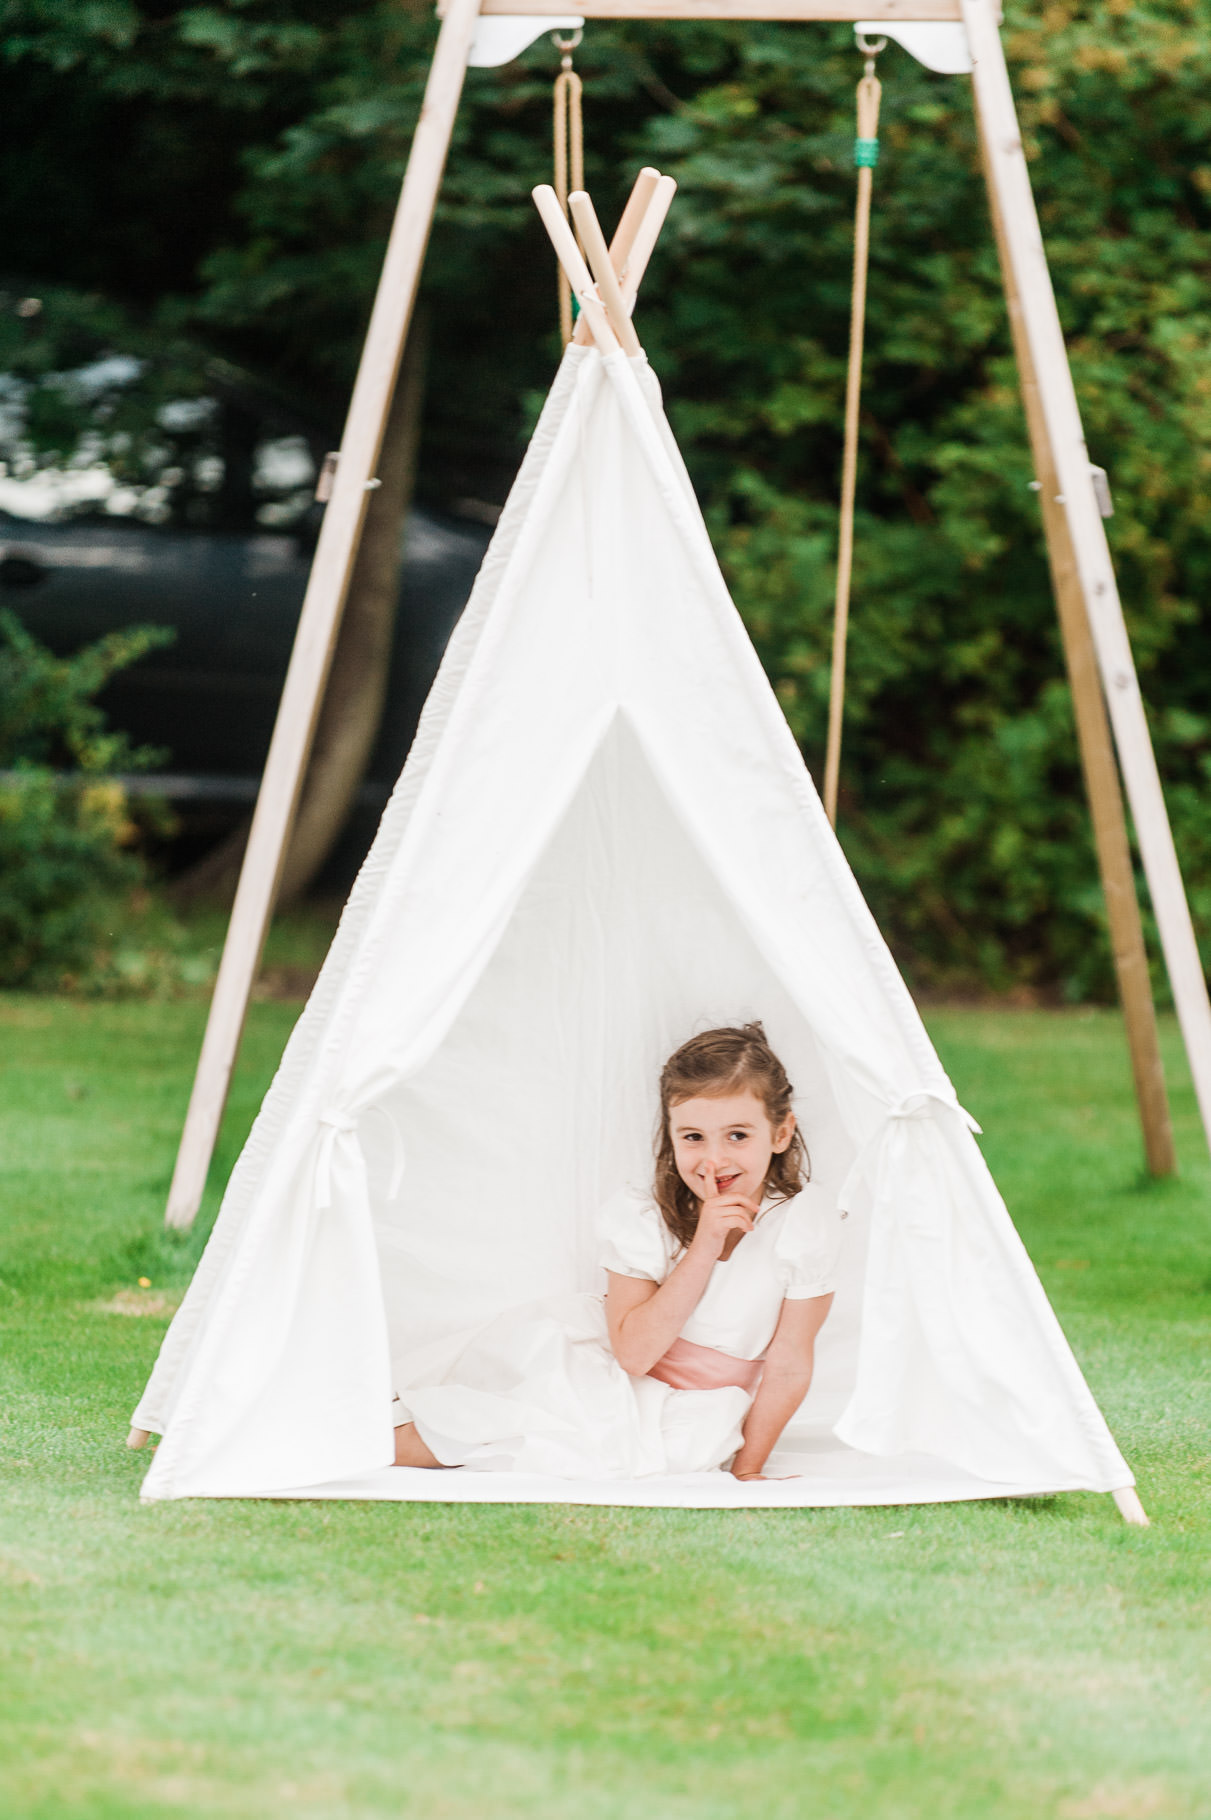 summer tipi wedding in scotland-child in tipi portrait-children's portrait-children at weddings